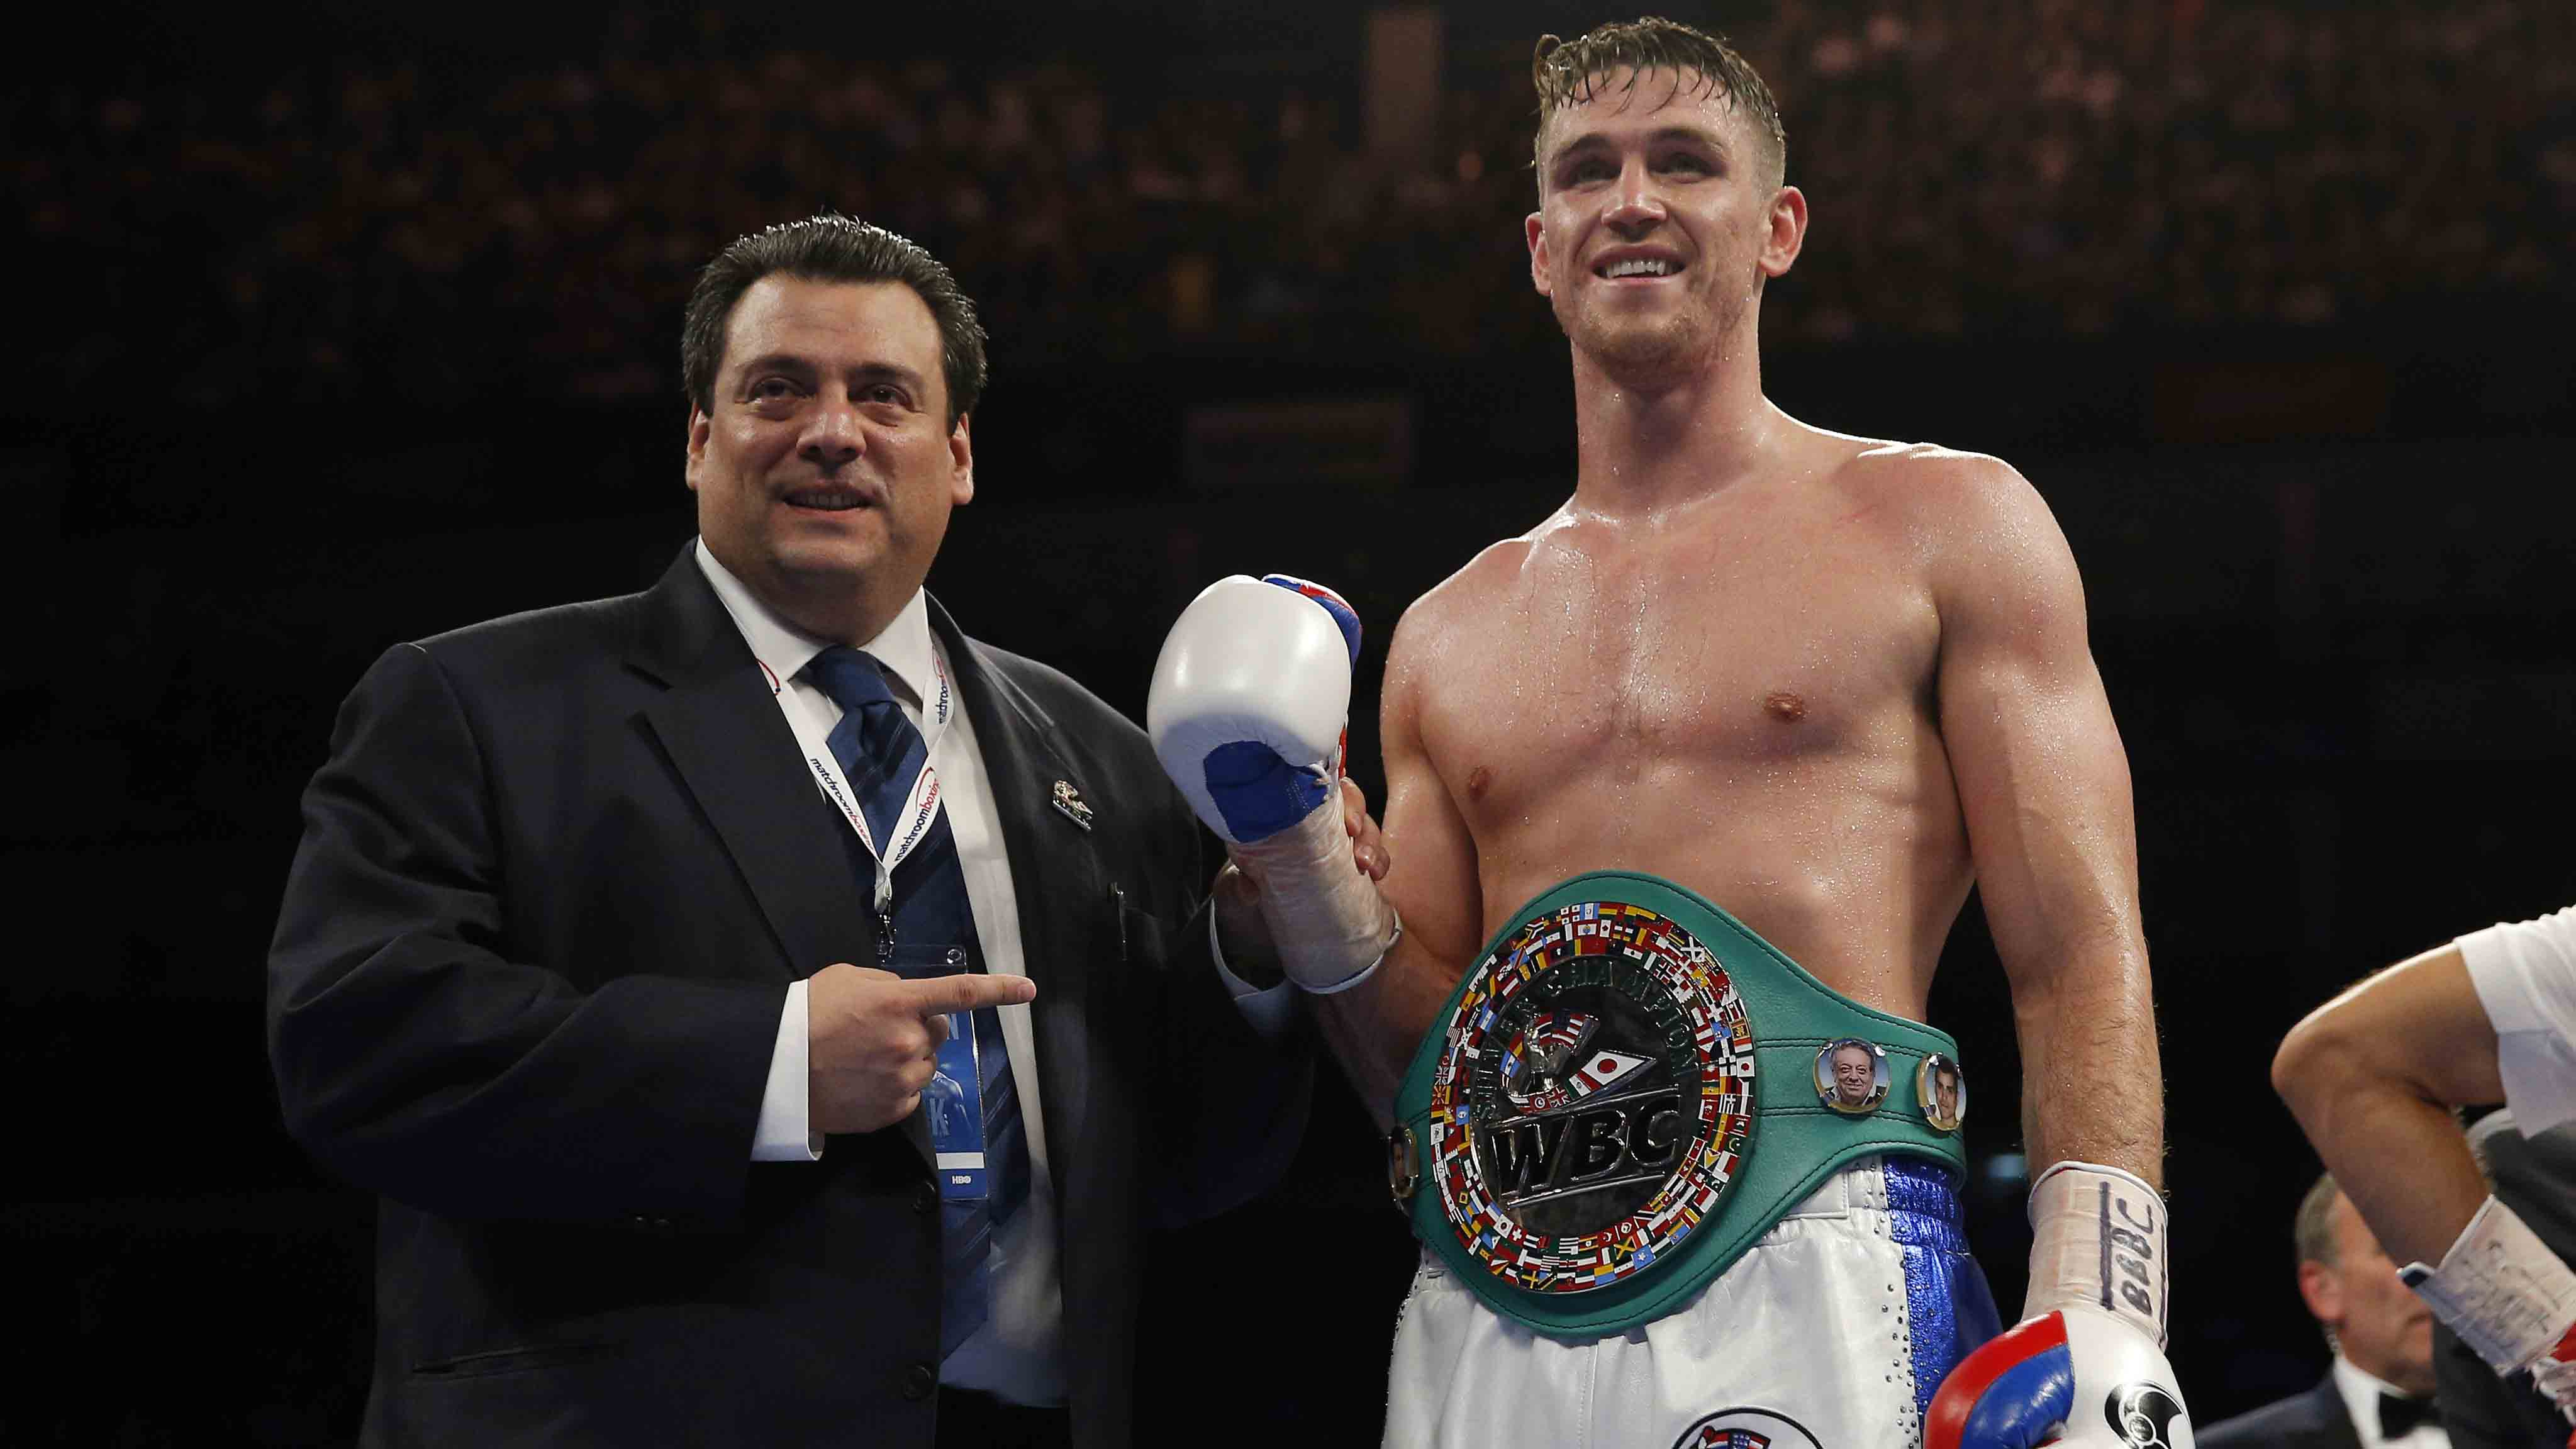 LONG READ Behind the scenes at the WBC convention Boxing News